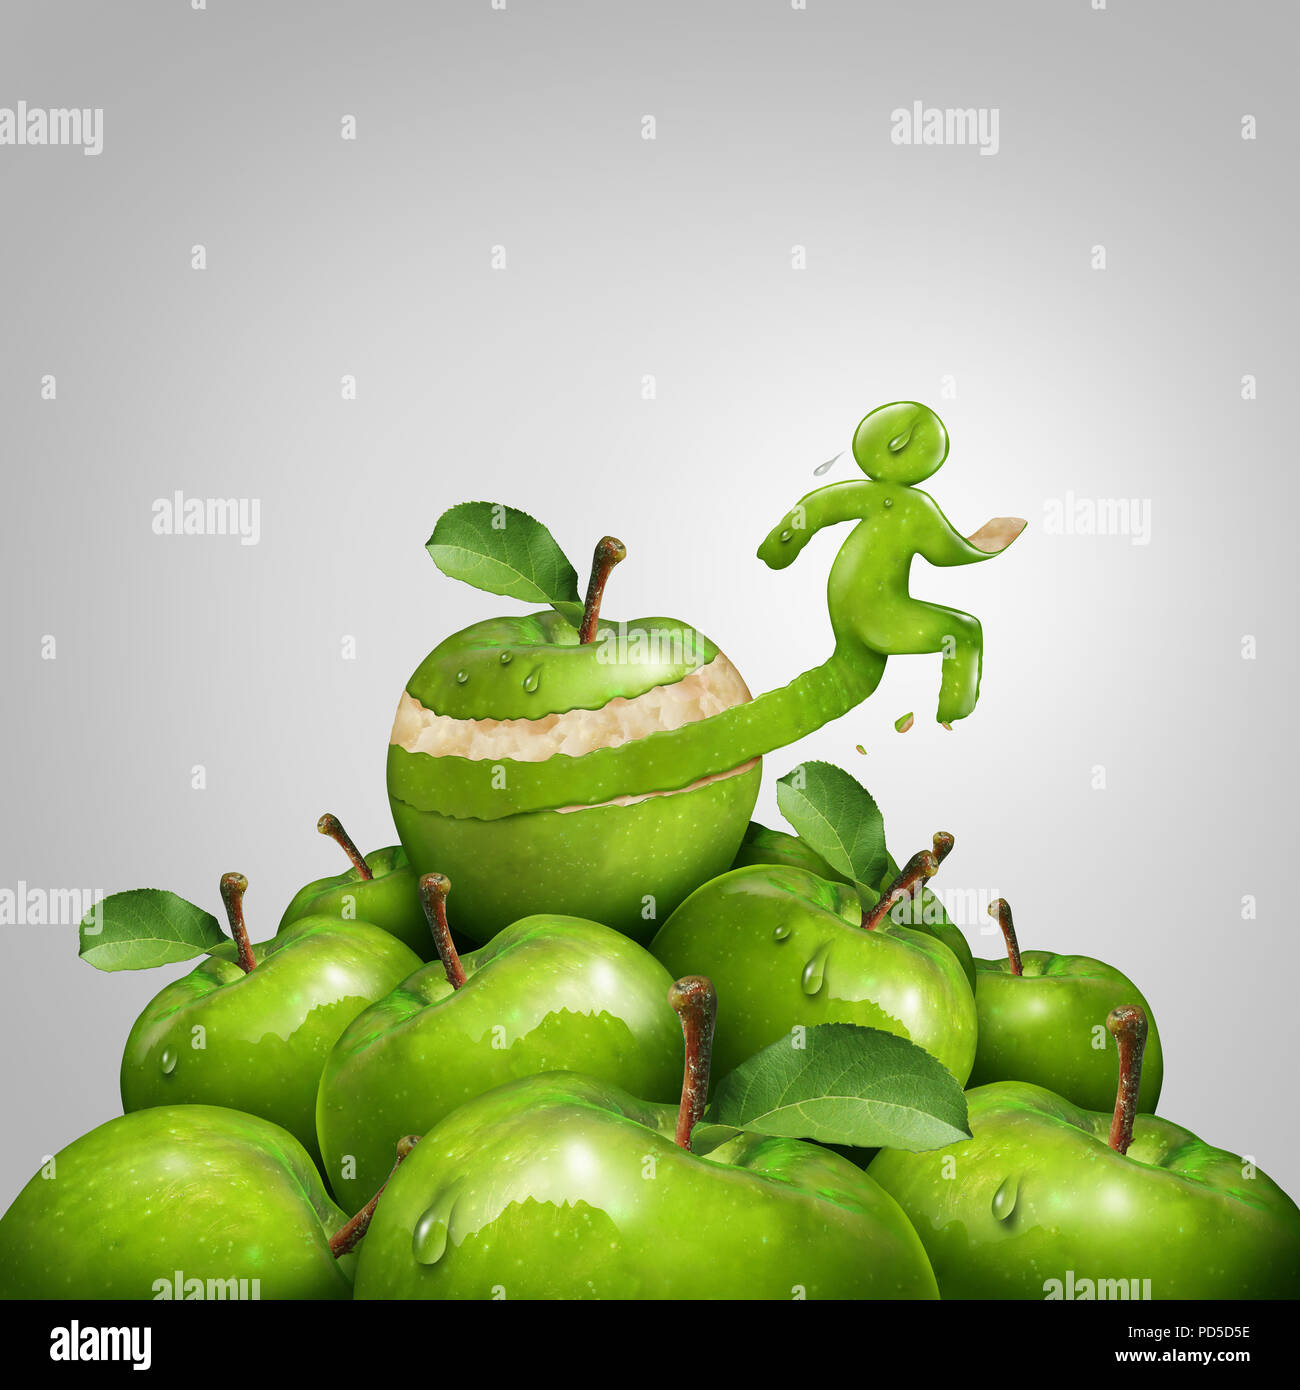 Fitness and weight loss concept as a vitality wellbeing idea through exercise and diet as an apple peel shaped as a runner or jogging person. - Stock Image